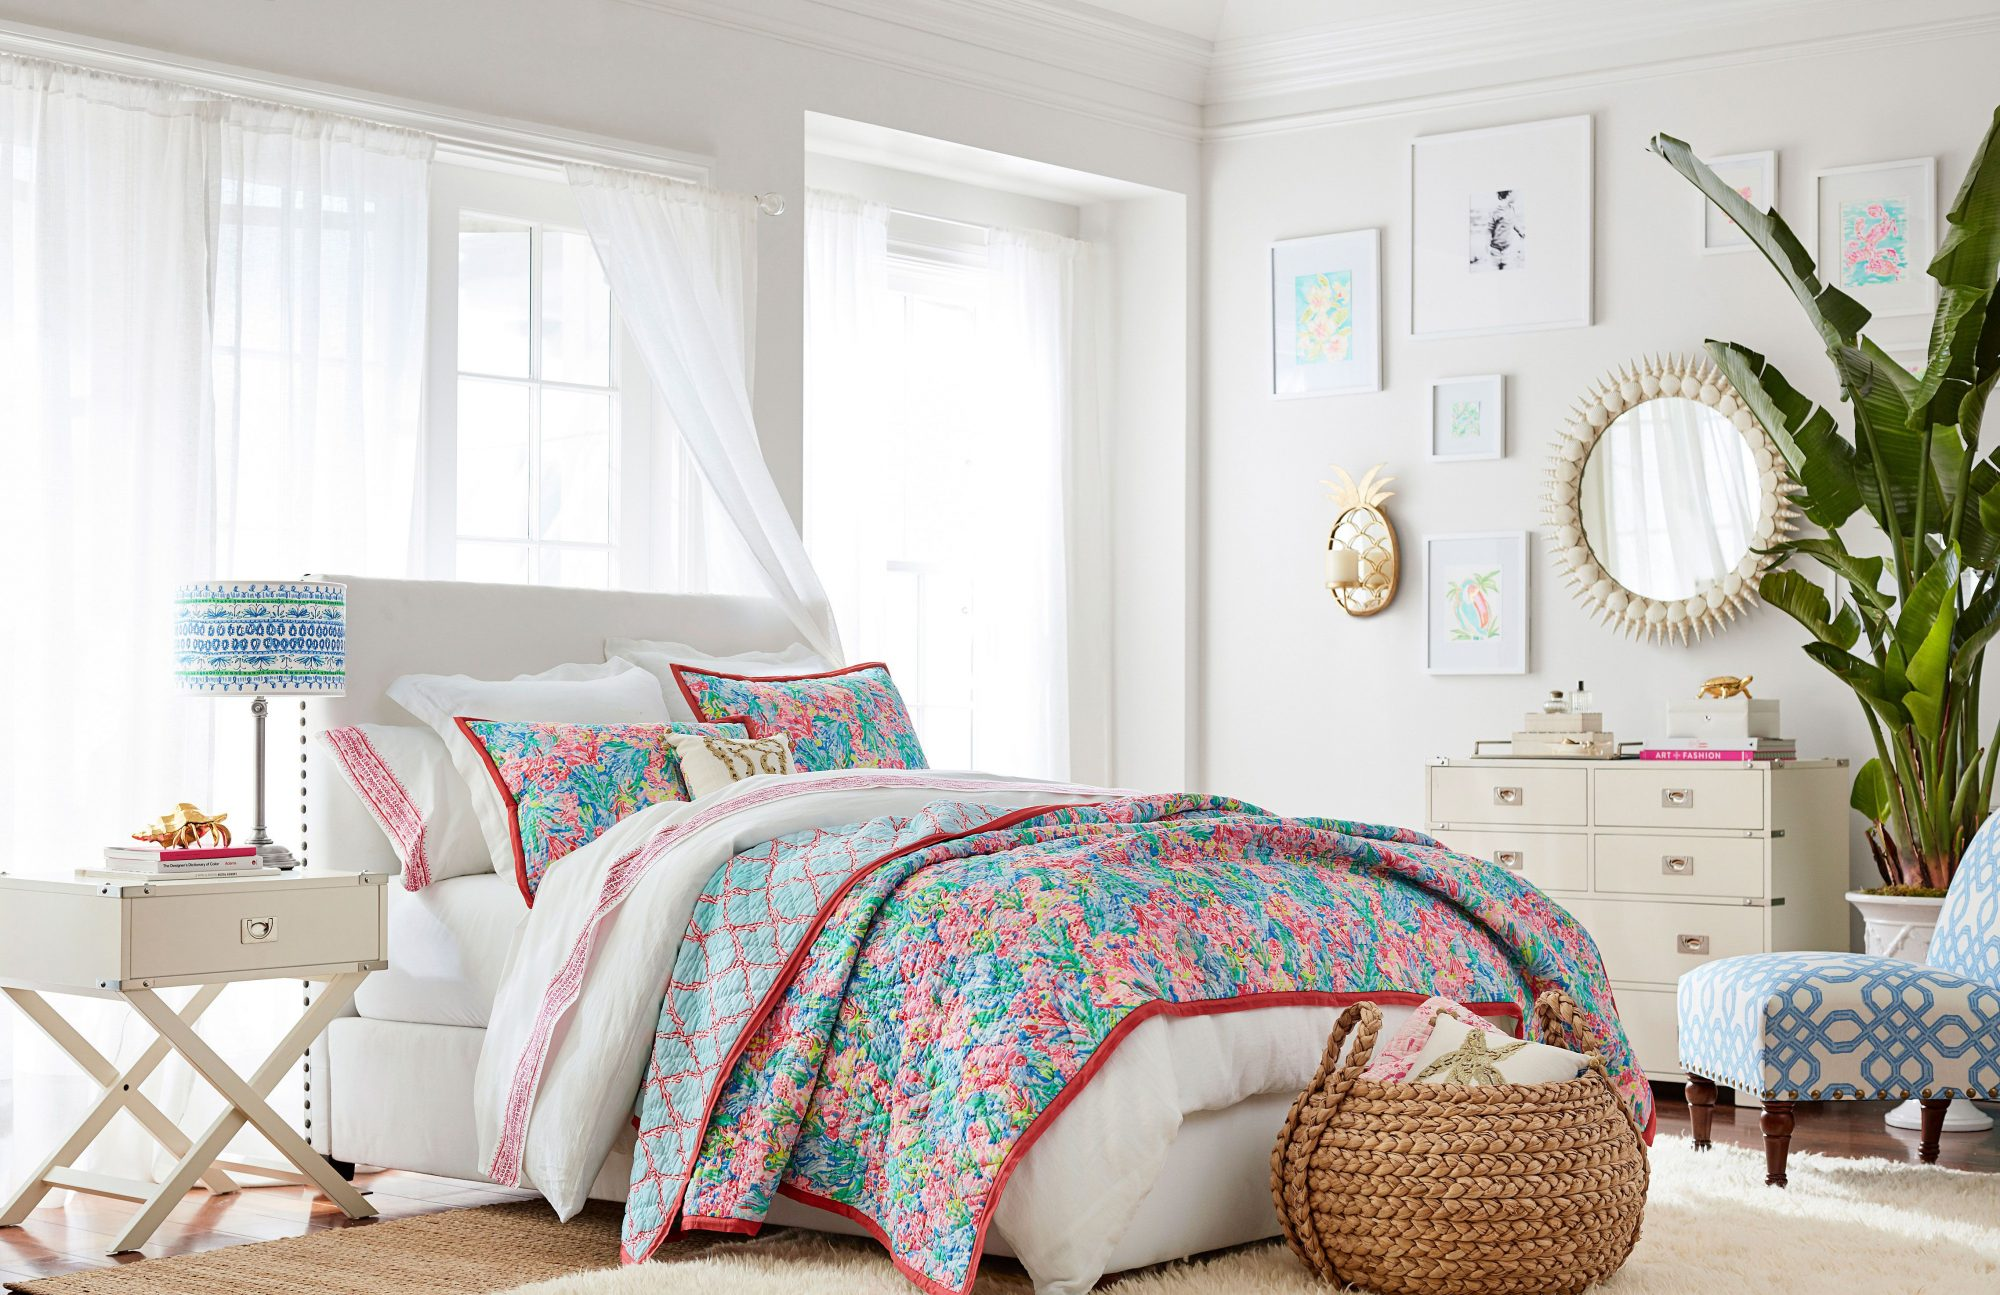 Pottery Barn x Lilly Pulitzer - Lead